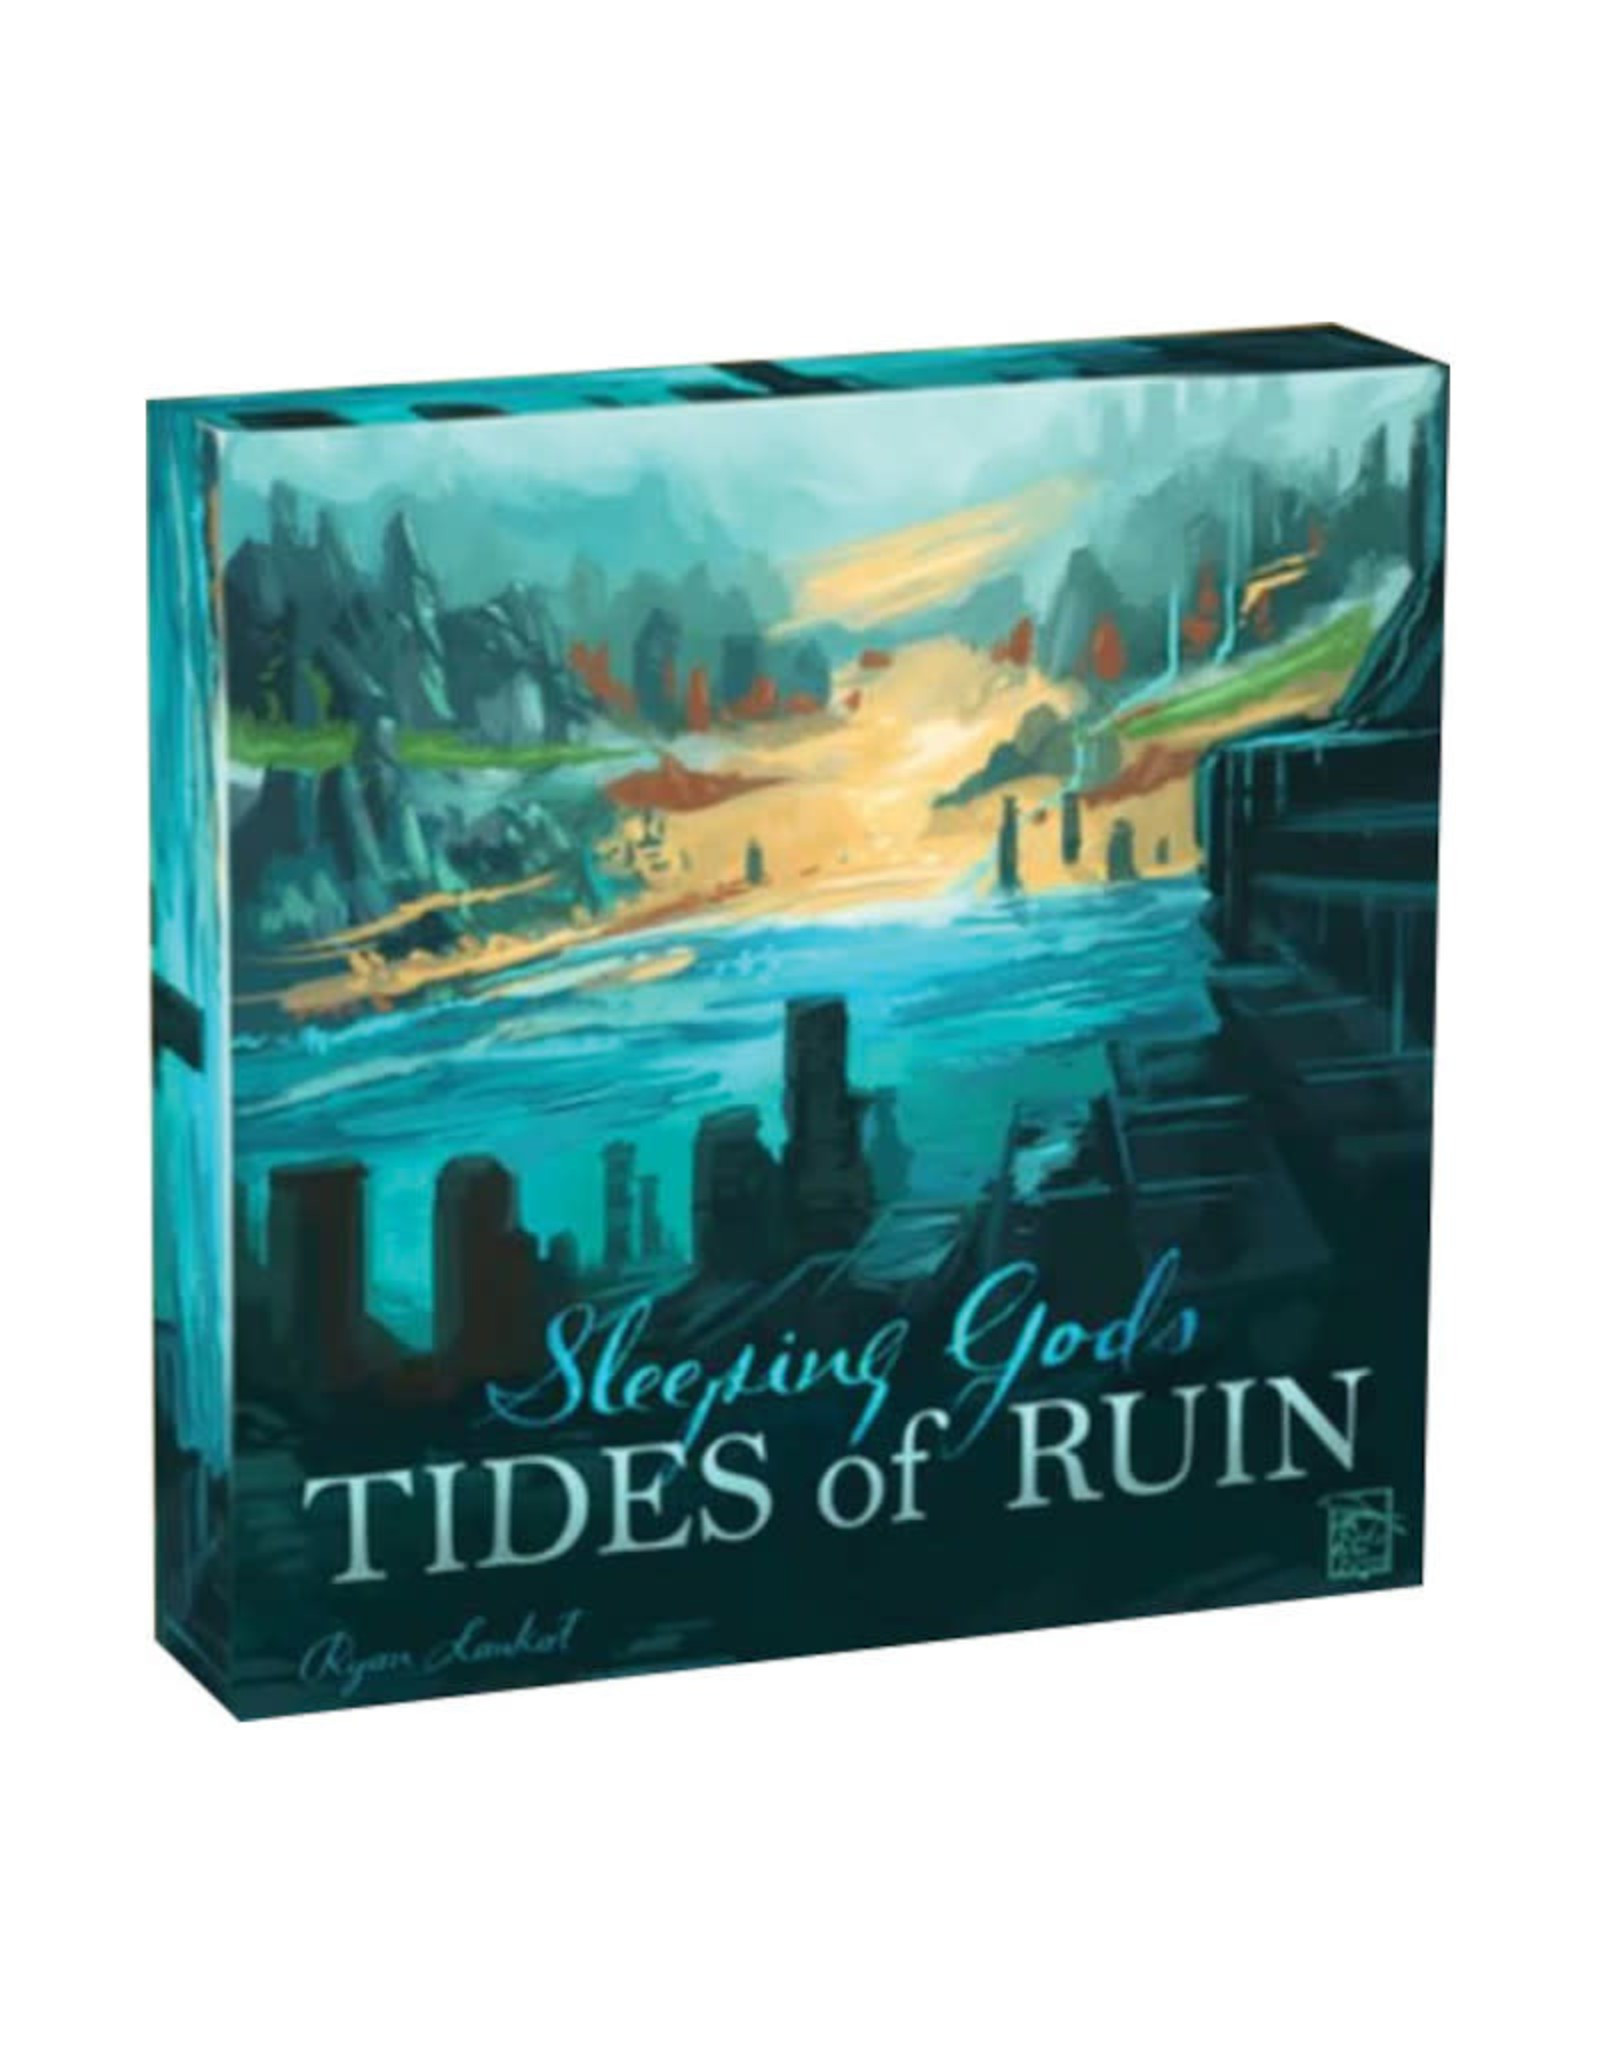 Red Raven Sleeping Gods Tides of Ruin